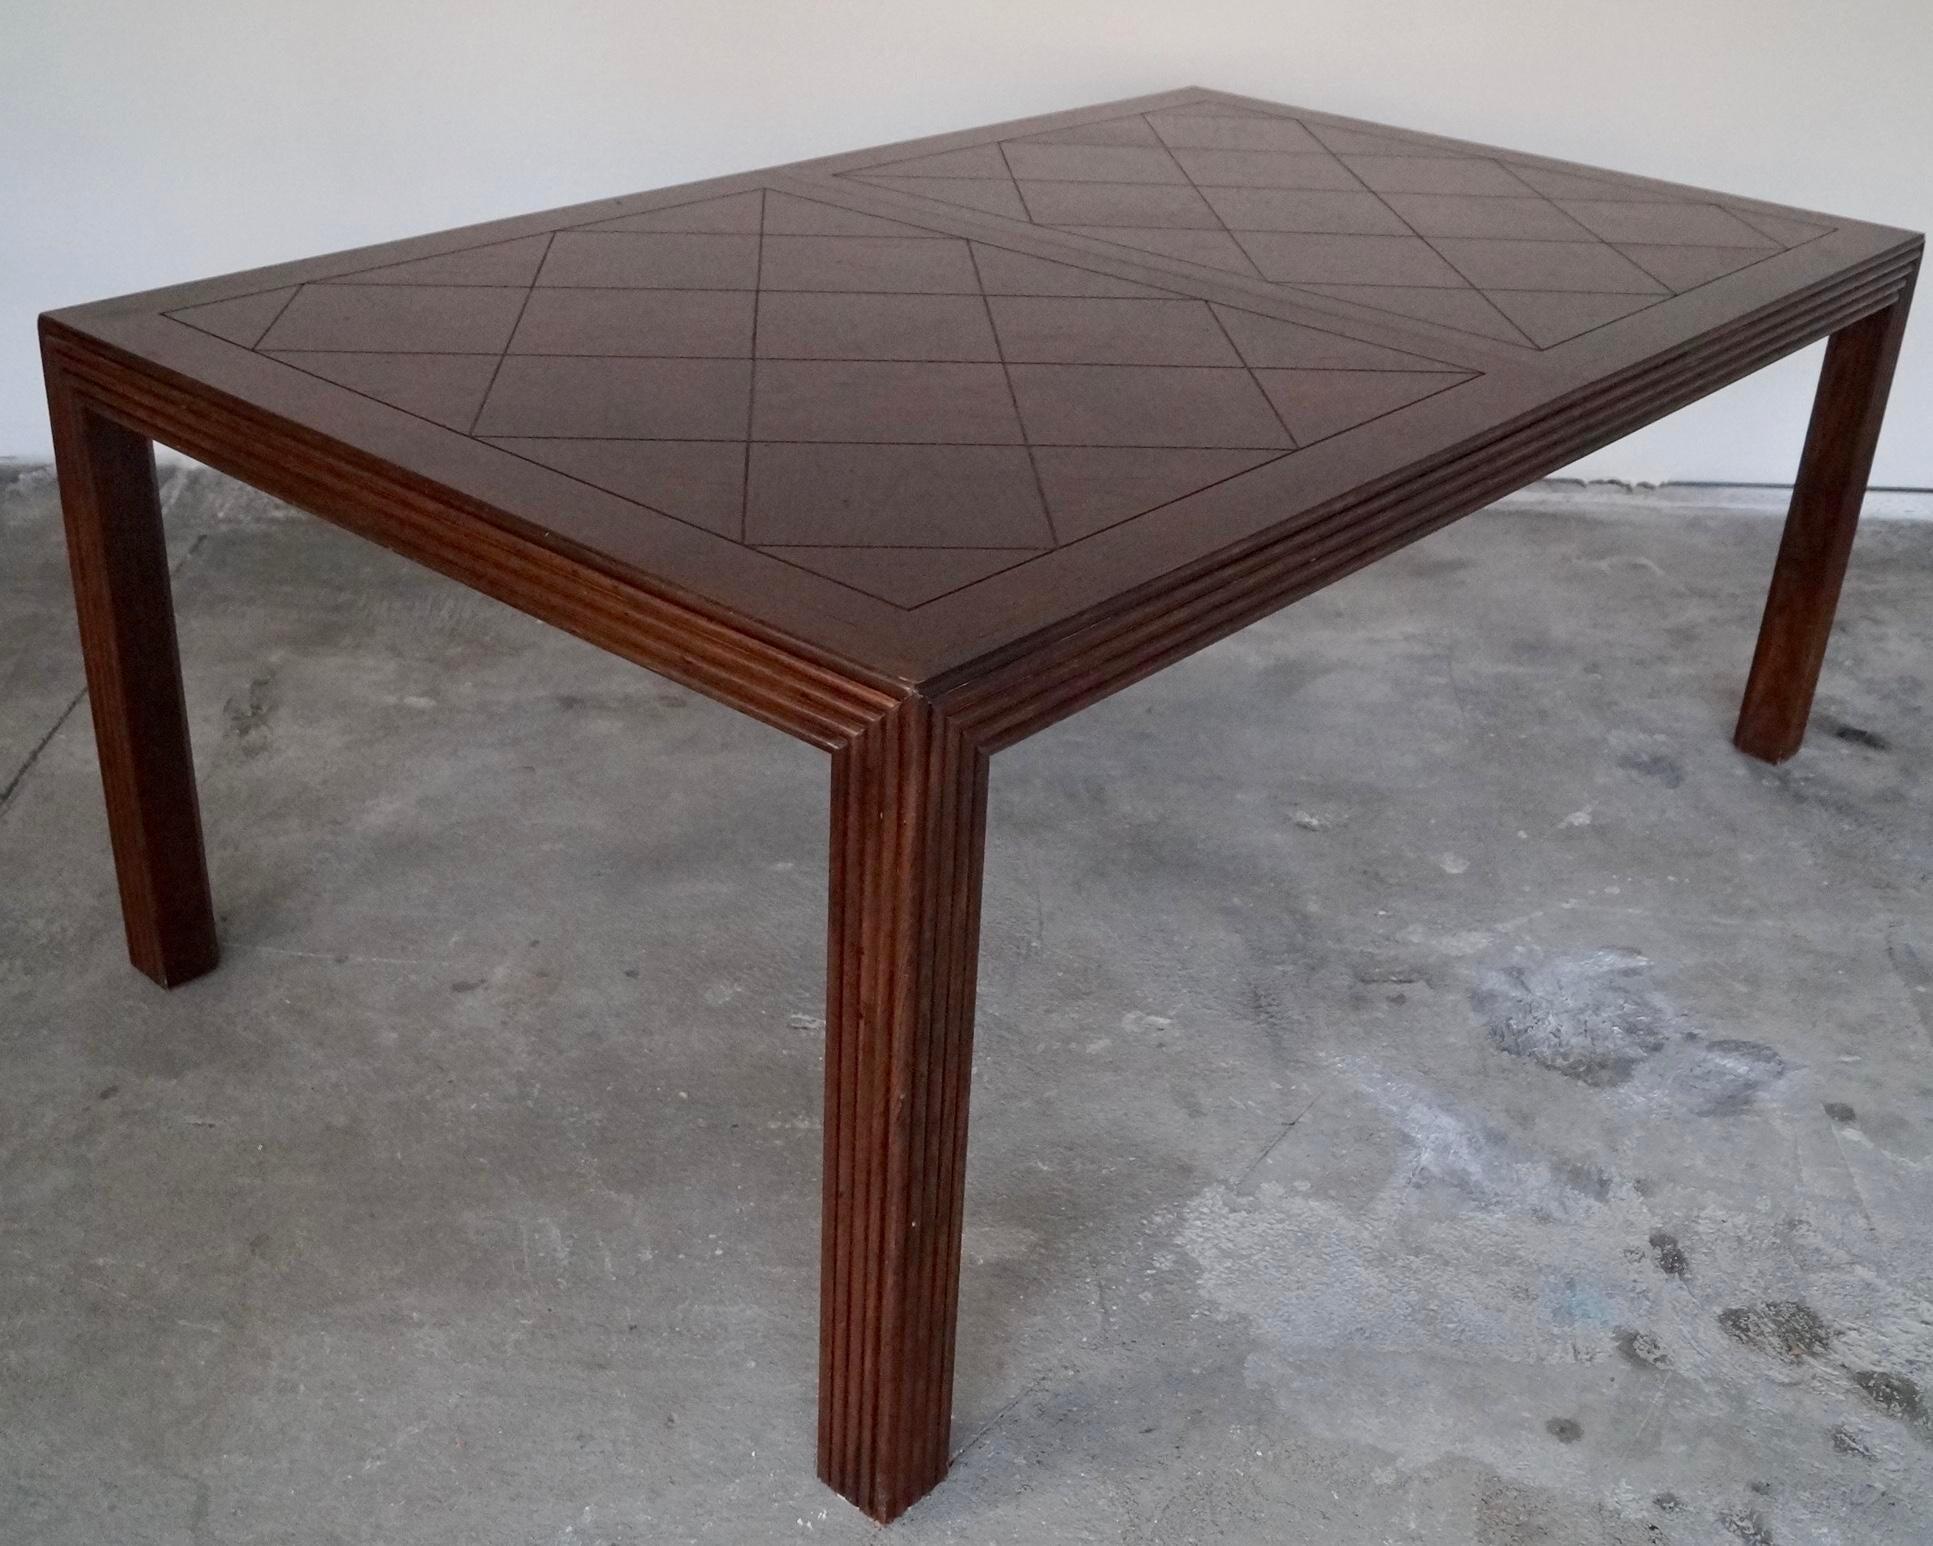 Vintage 1970s Parsons Parquet Top Dining Table by  : 35435351 dac1 4c45 ae72 8eda59ac79e5aspectfitampwidth640ampheight640 from www.chairish.com size 640 x 640 jpeg 43kB